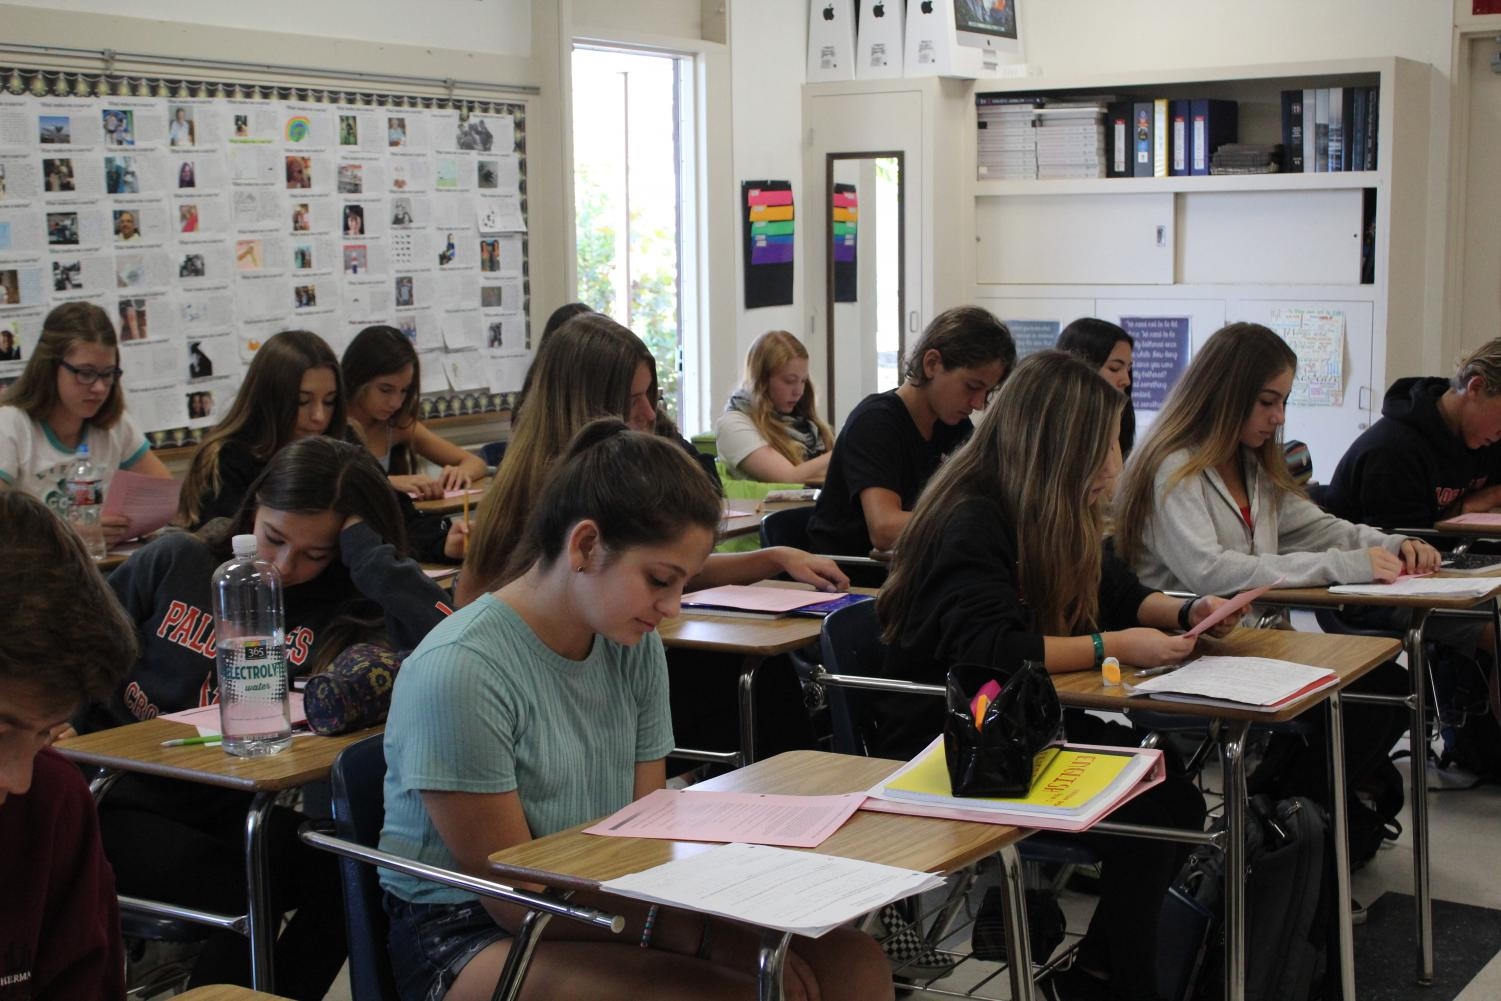 Students work in a crowded classroom, which appears to be the norm. Here, Ms. Ruiz's English 1 Honors class works in a room of 39 students.